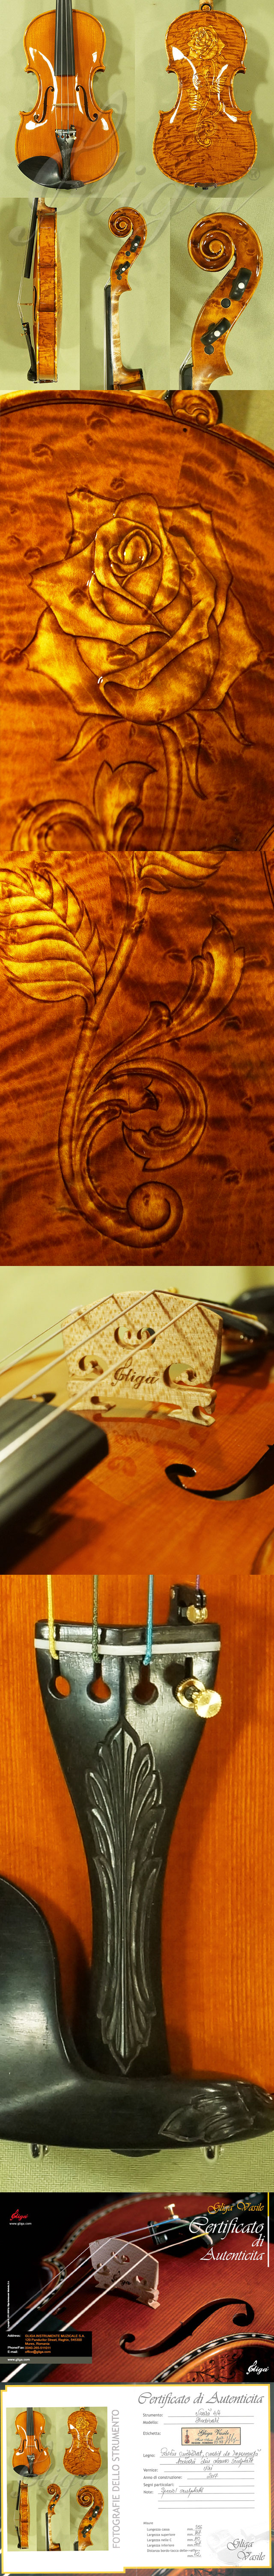 Shiny 4/4 MAESTRO VASILE GLIGA Bird's Eye Maple Violin